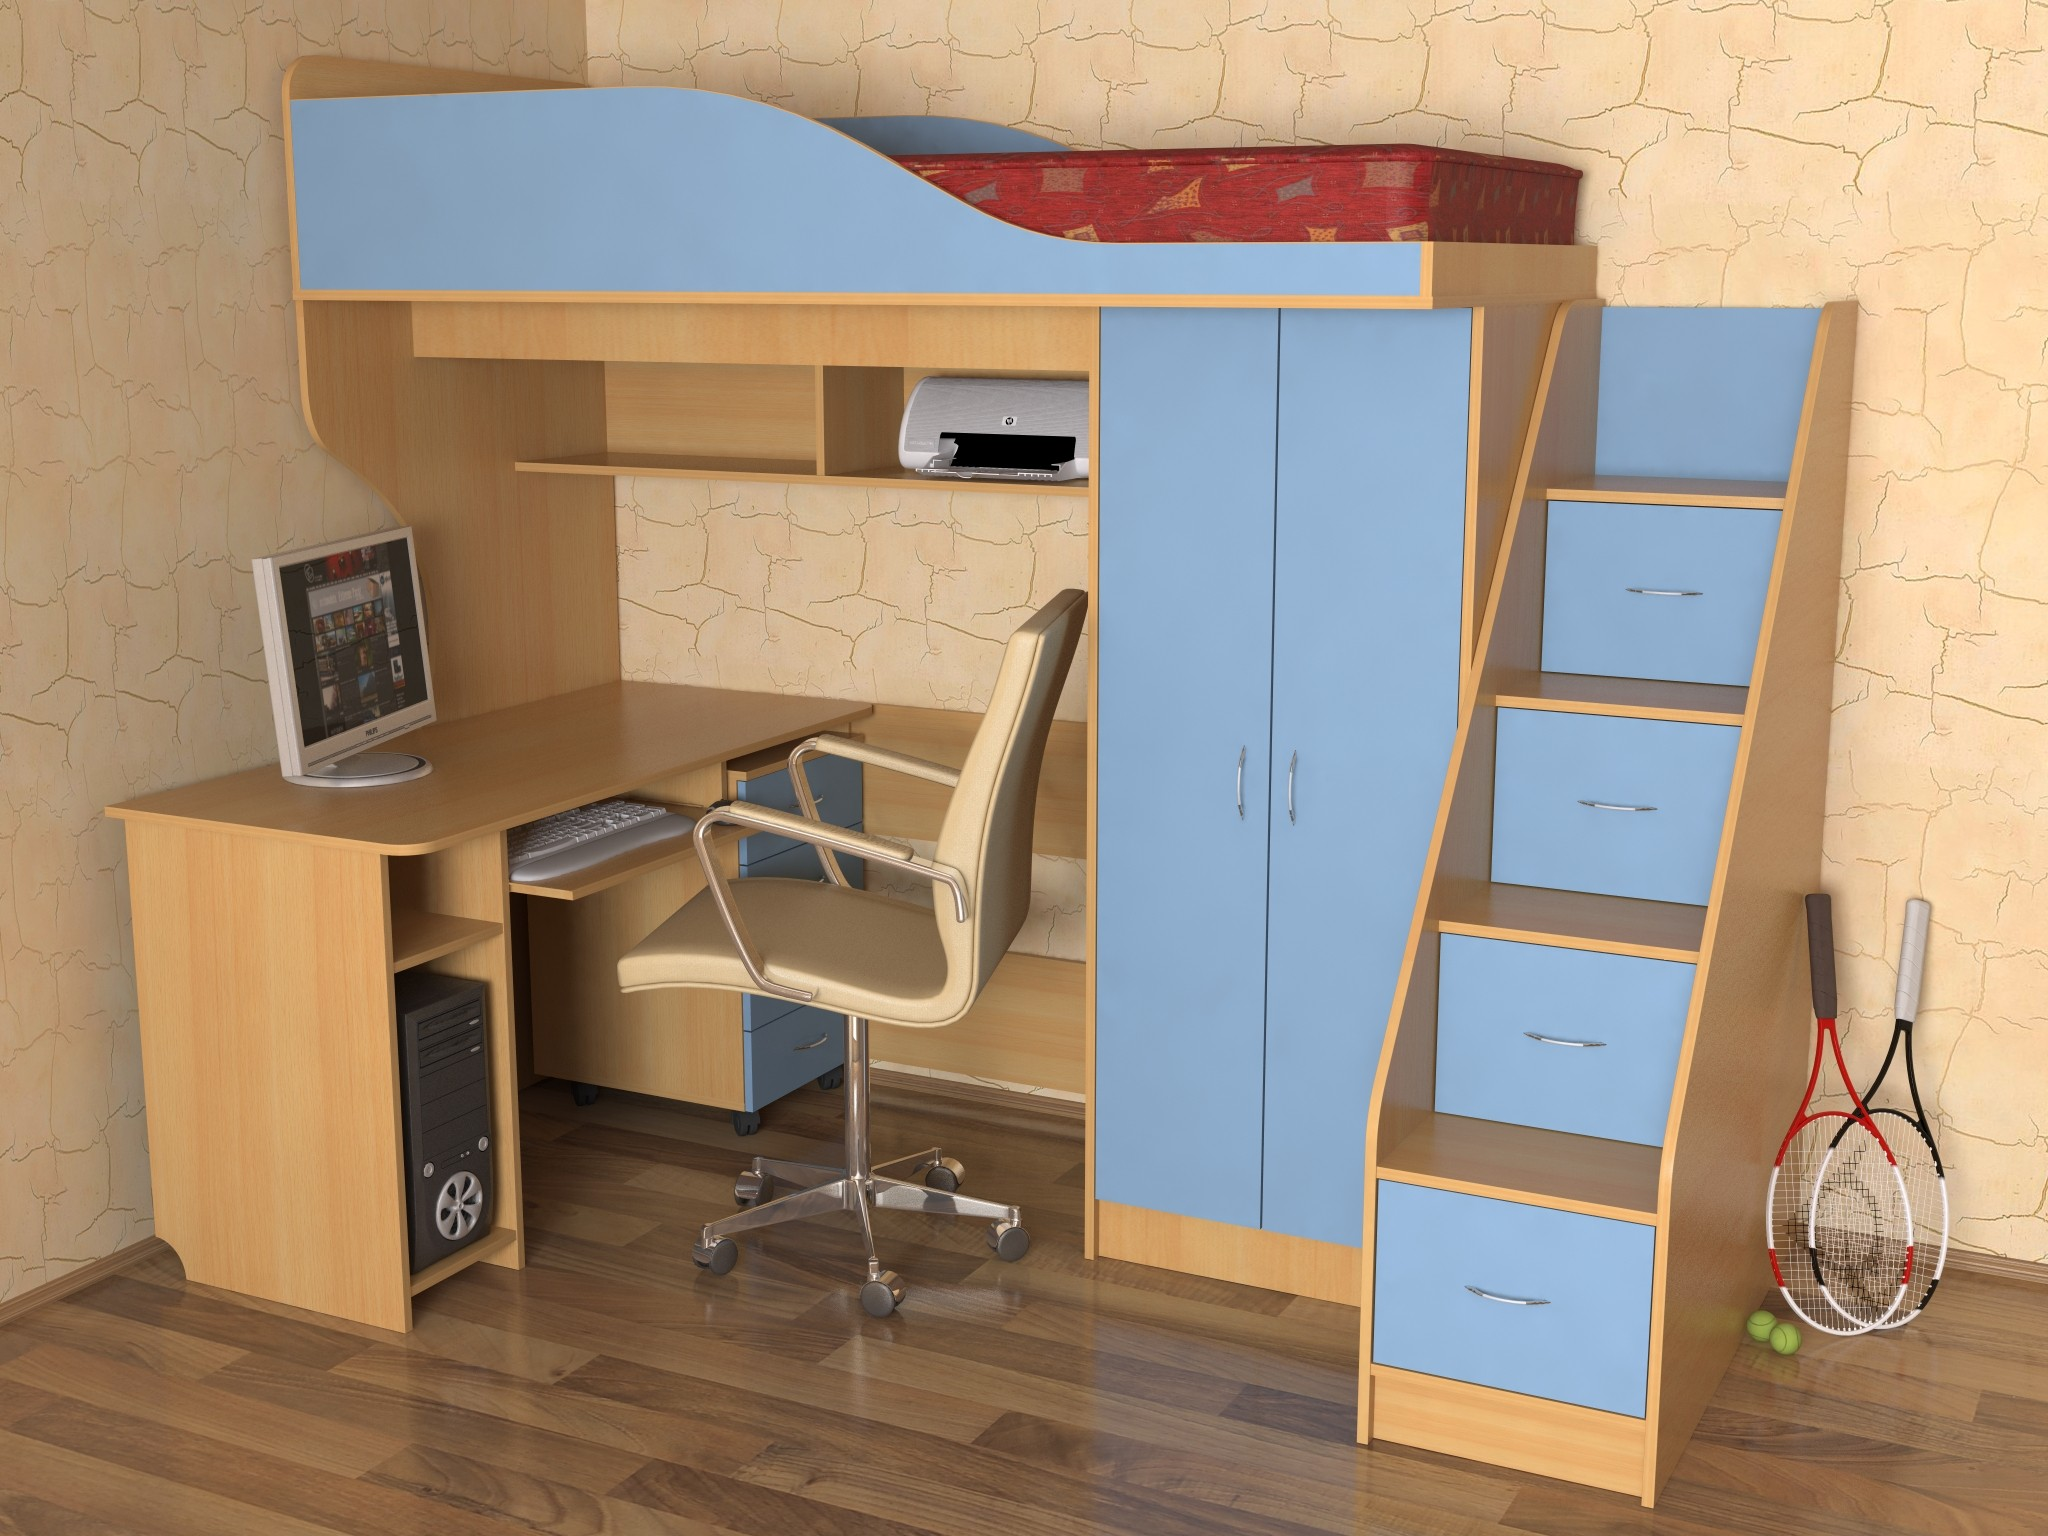 Set of furniture for a children's room